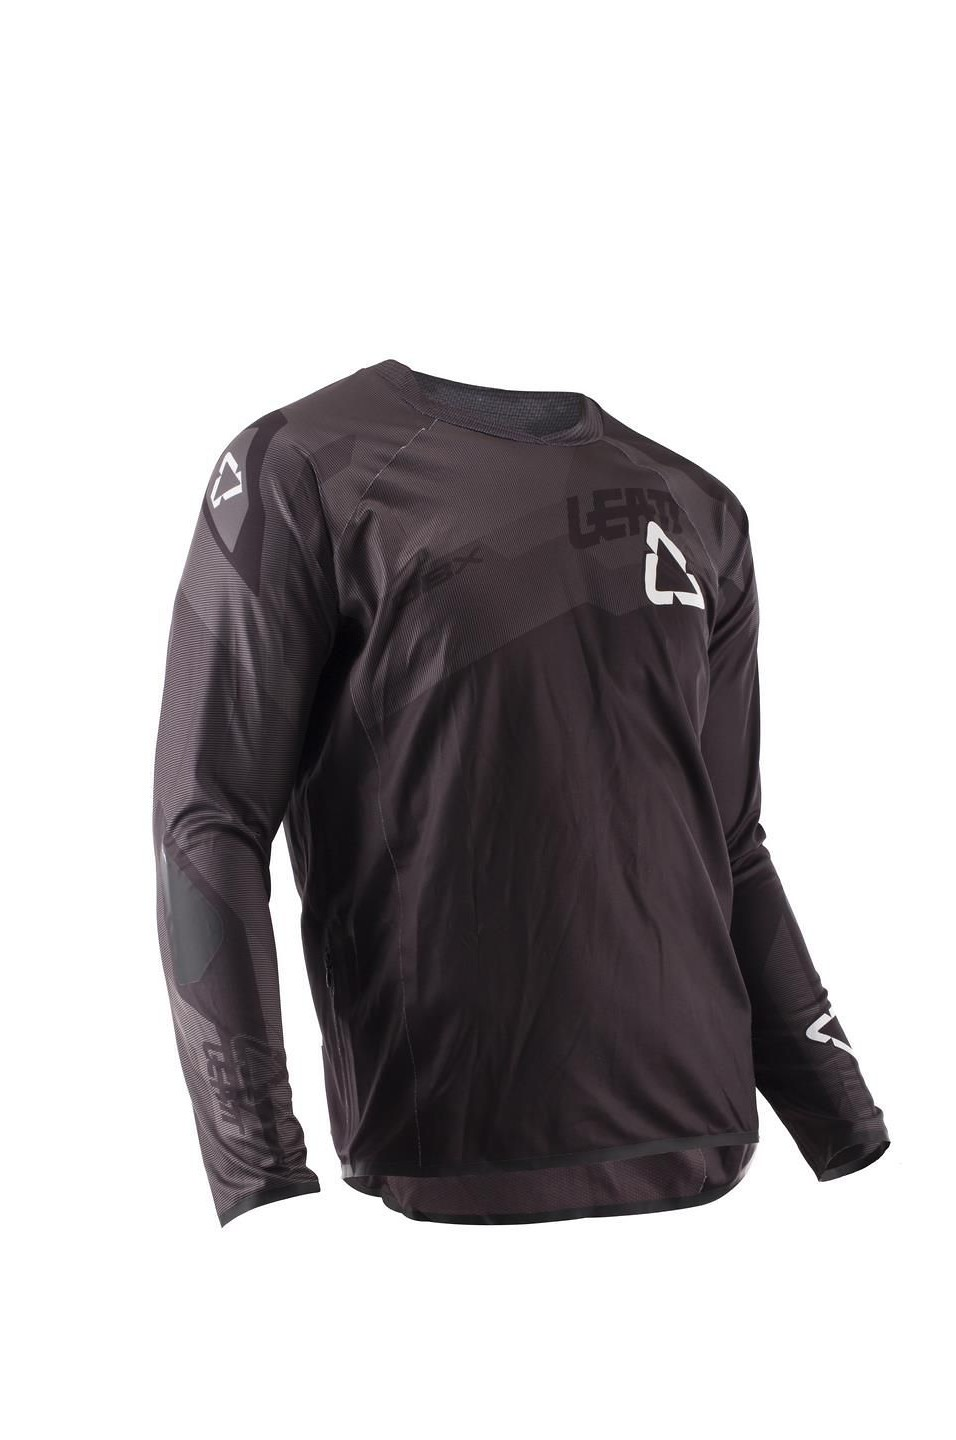 Leatt DBX 5.0 All-Mountain Riding Jersey - Reviews 2174df0ba